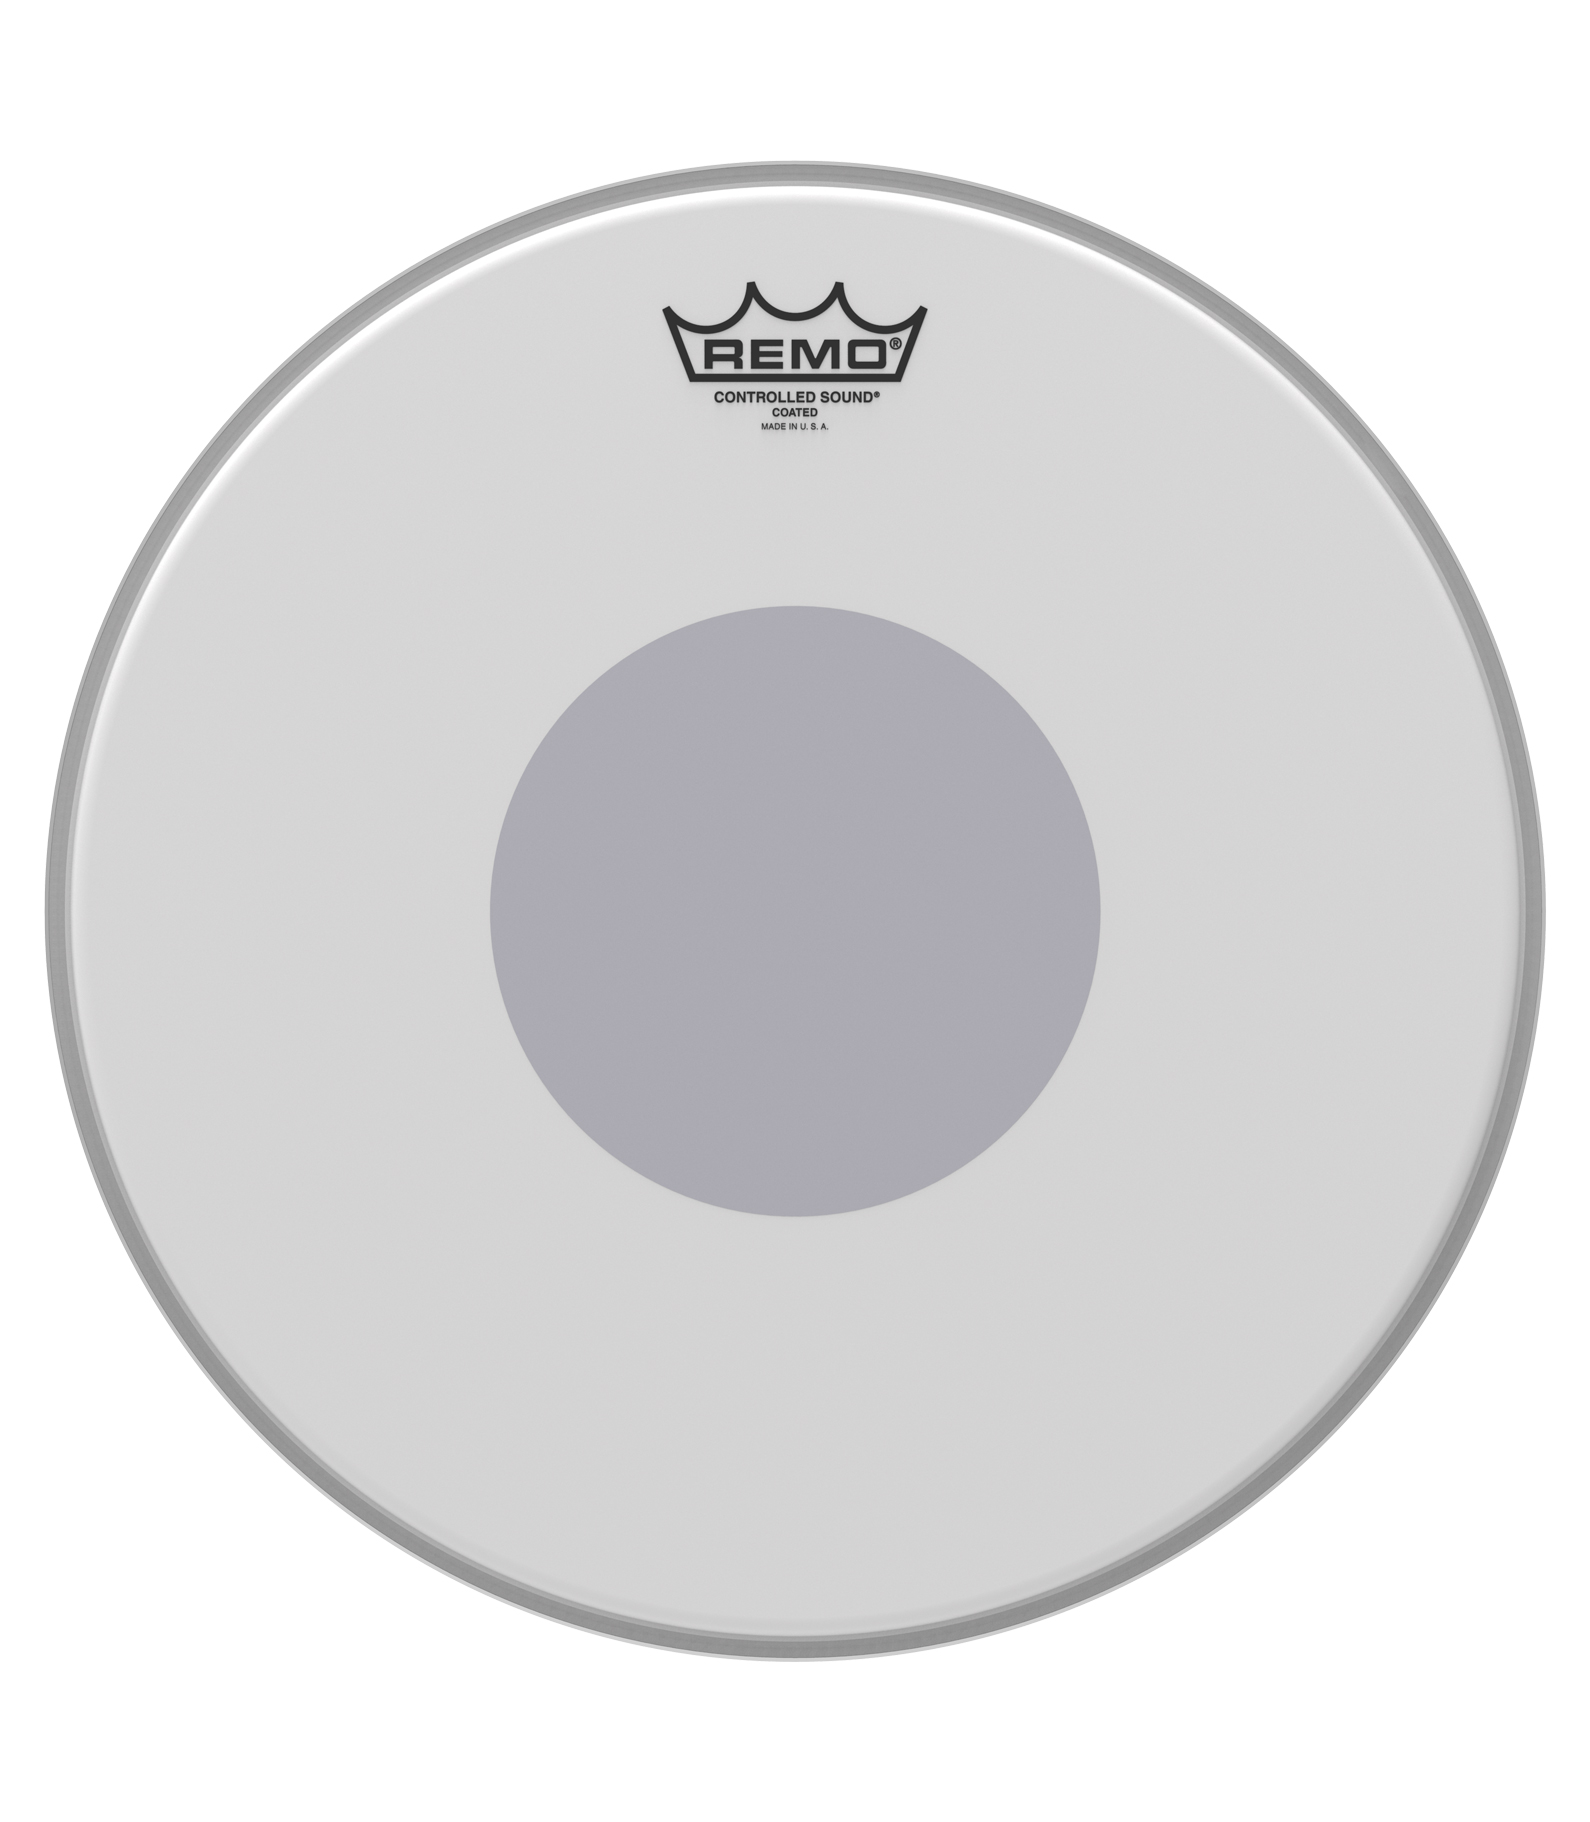 Buy Remo - Batter CONTROLLED SOUND Coated 12 Diameter B